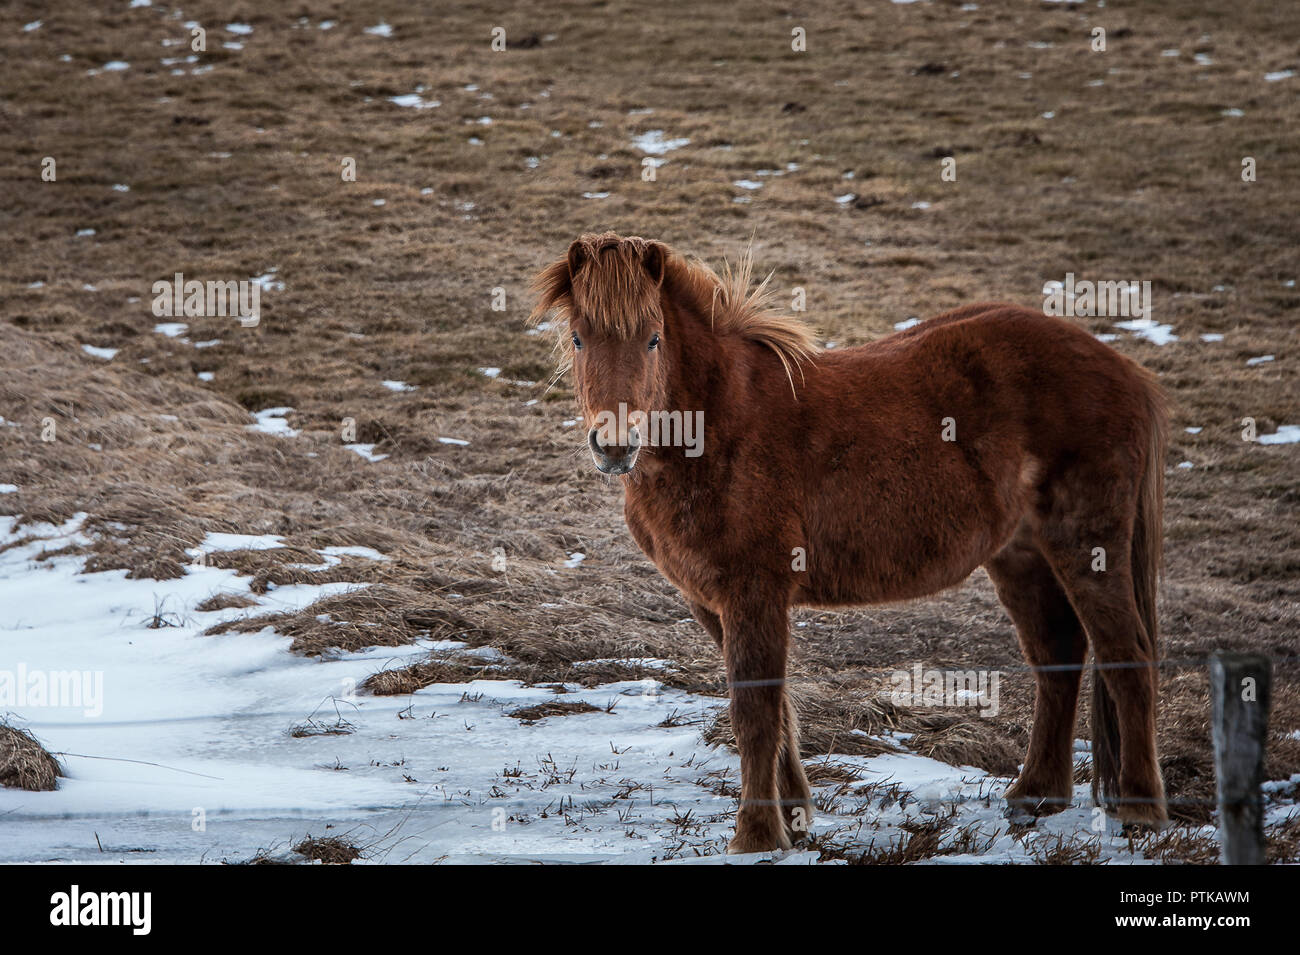 Portrait of an Icelandic horse or pony. Beautiful chestnut mare stands side on, facing camera. - Stock Image